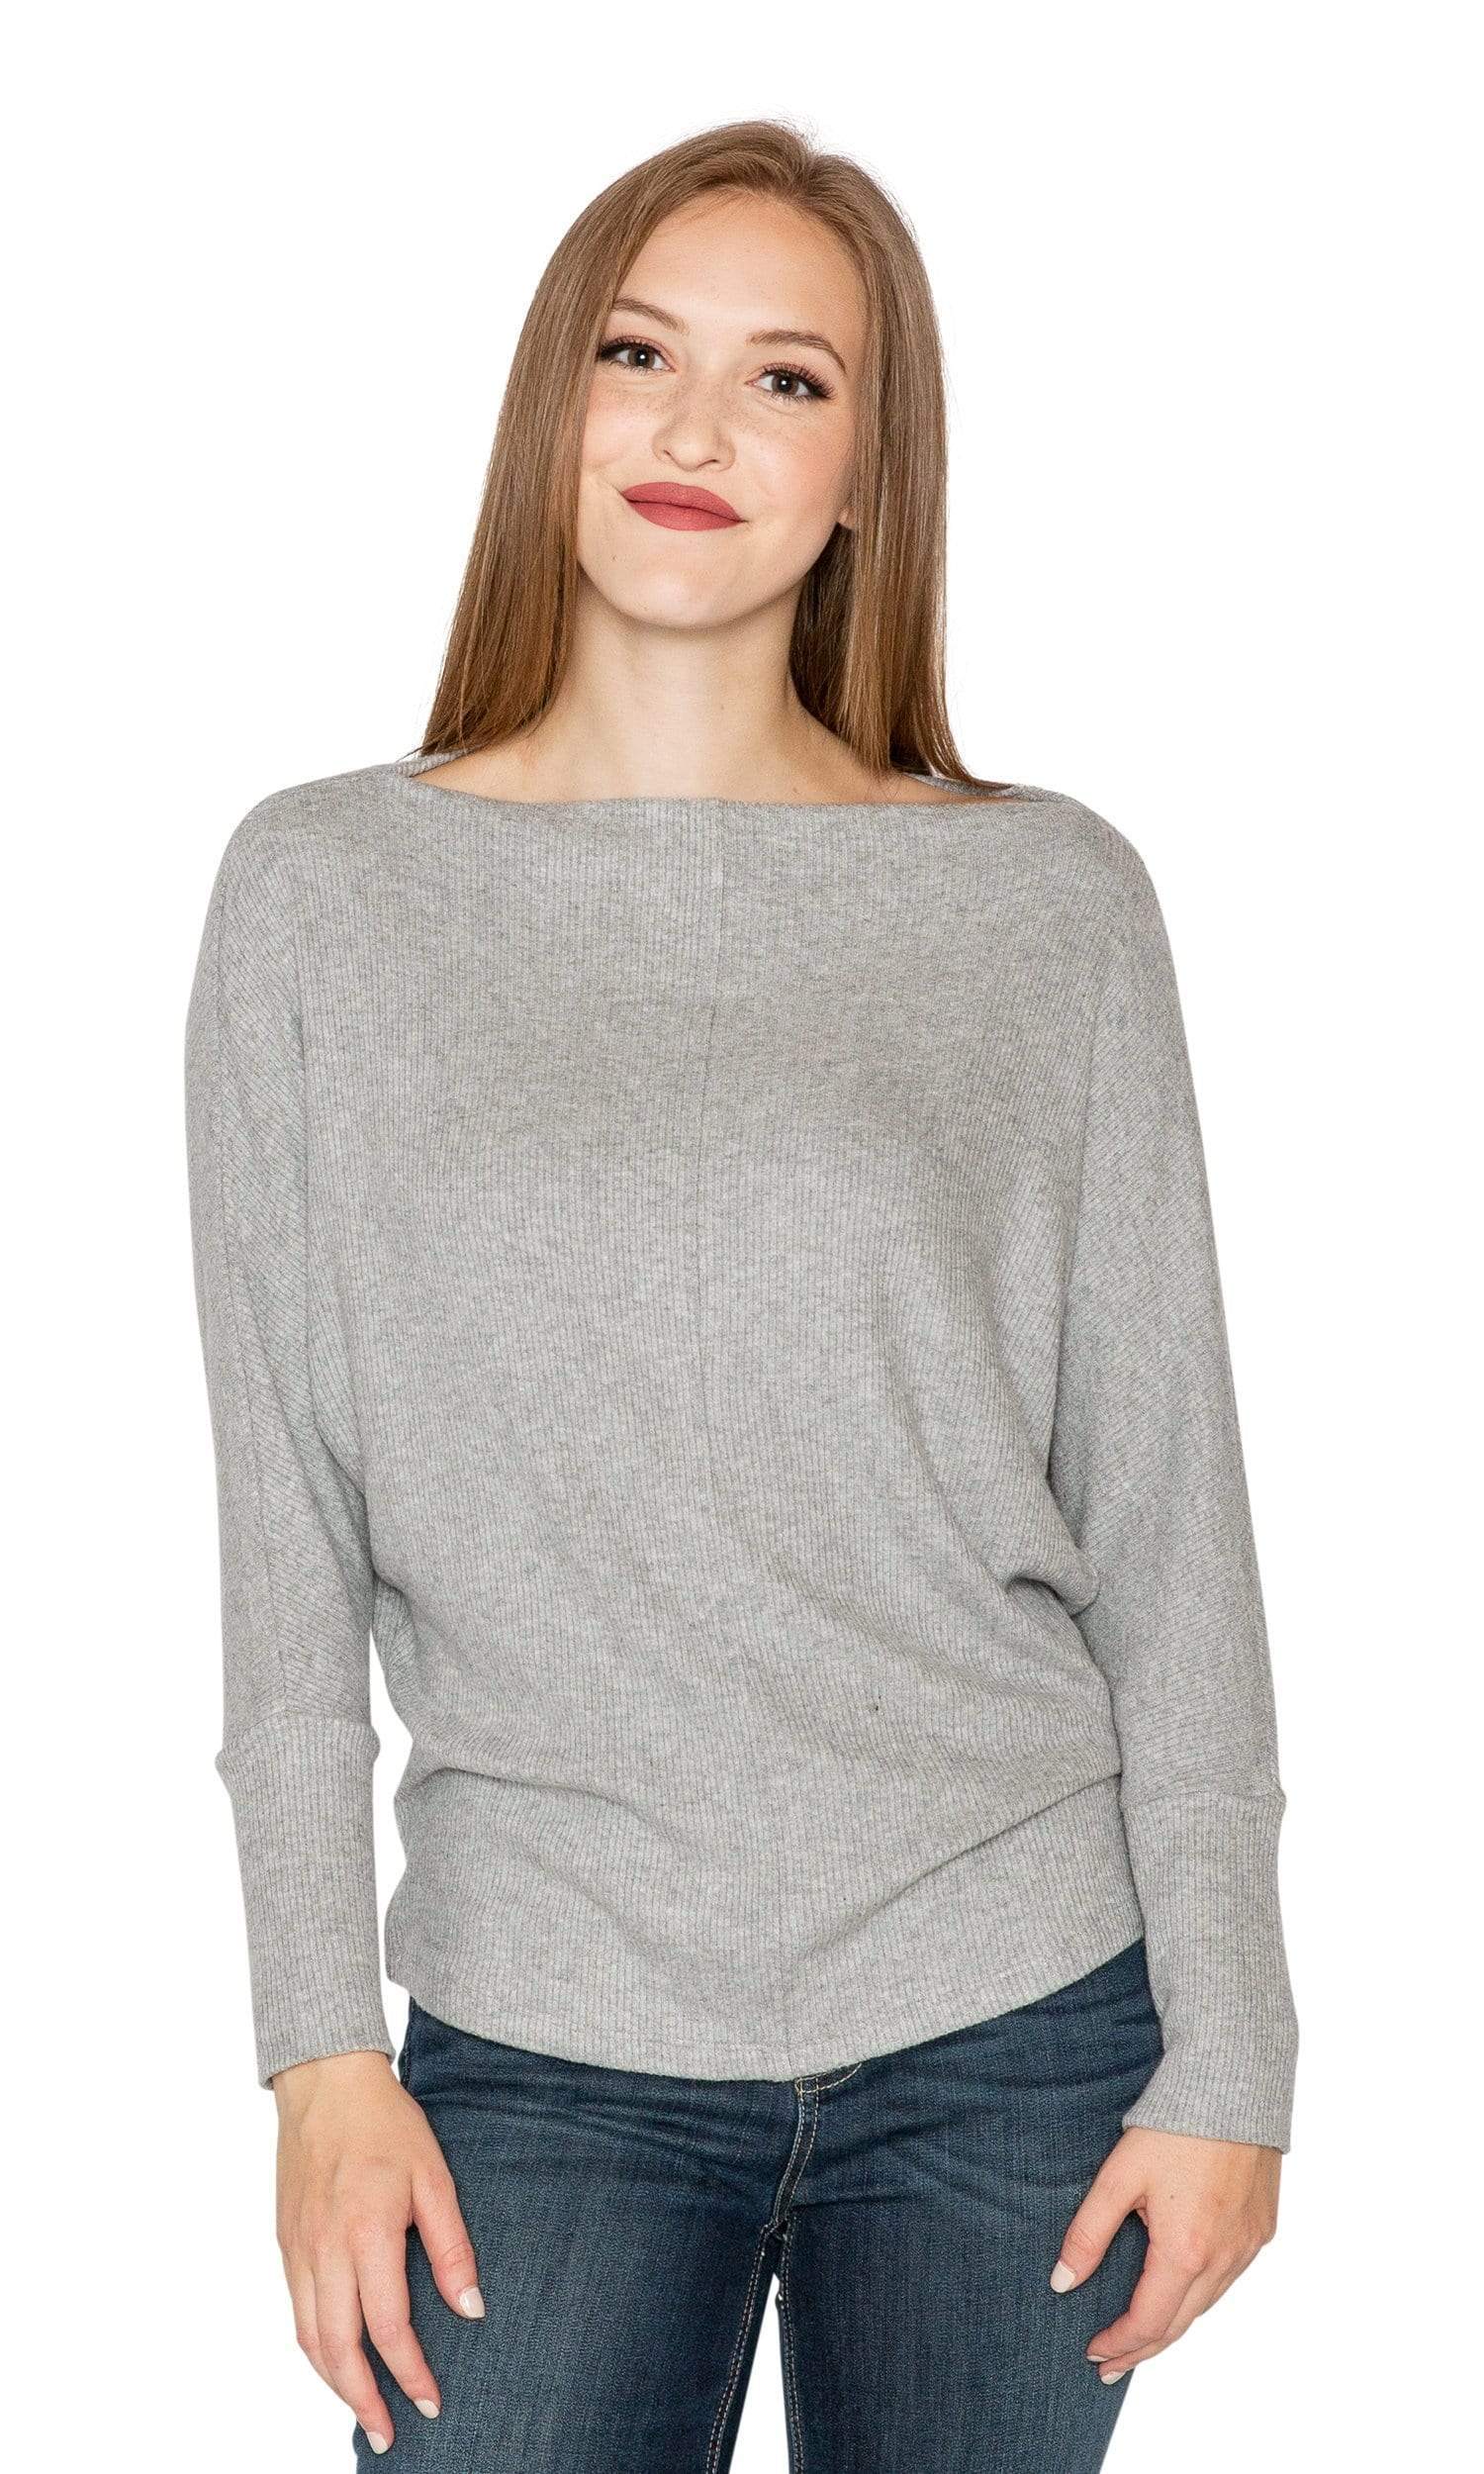 Velvet by Graham & Spencer Borsala Cozy Rib Dolman Top